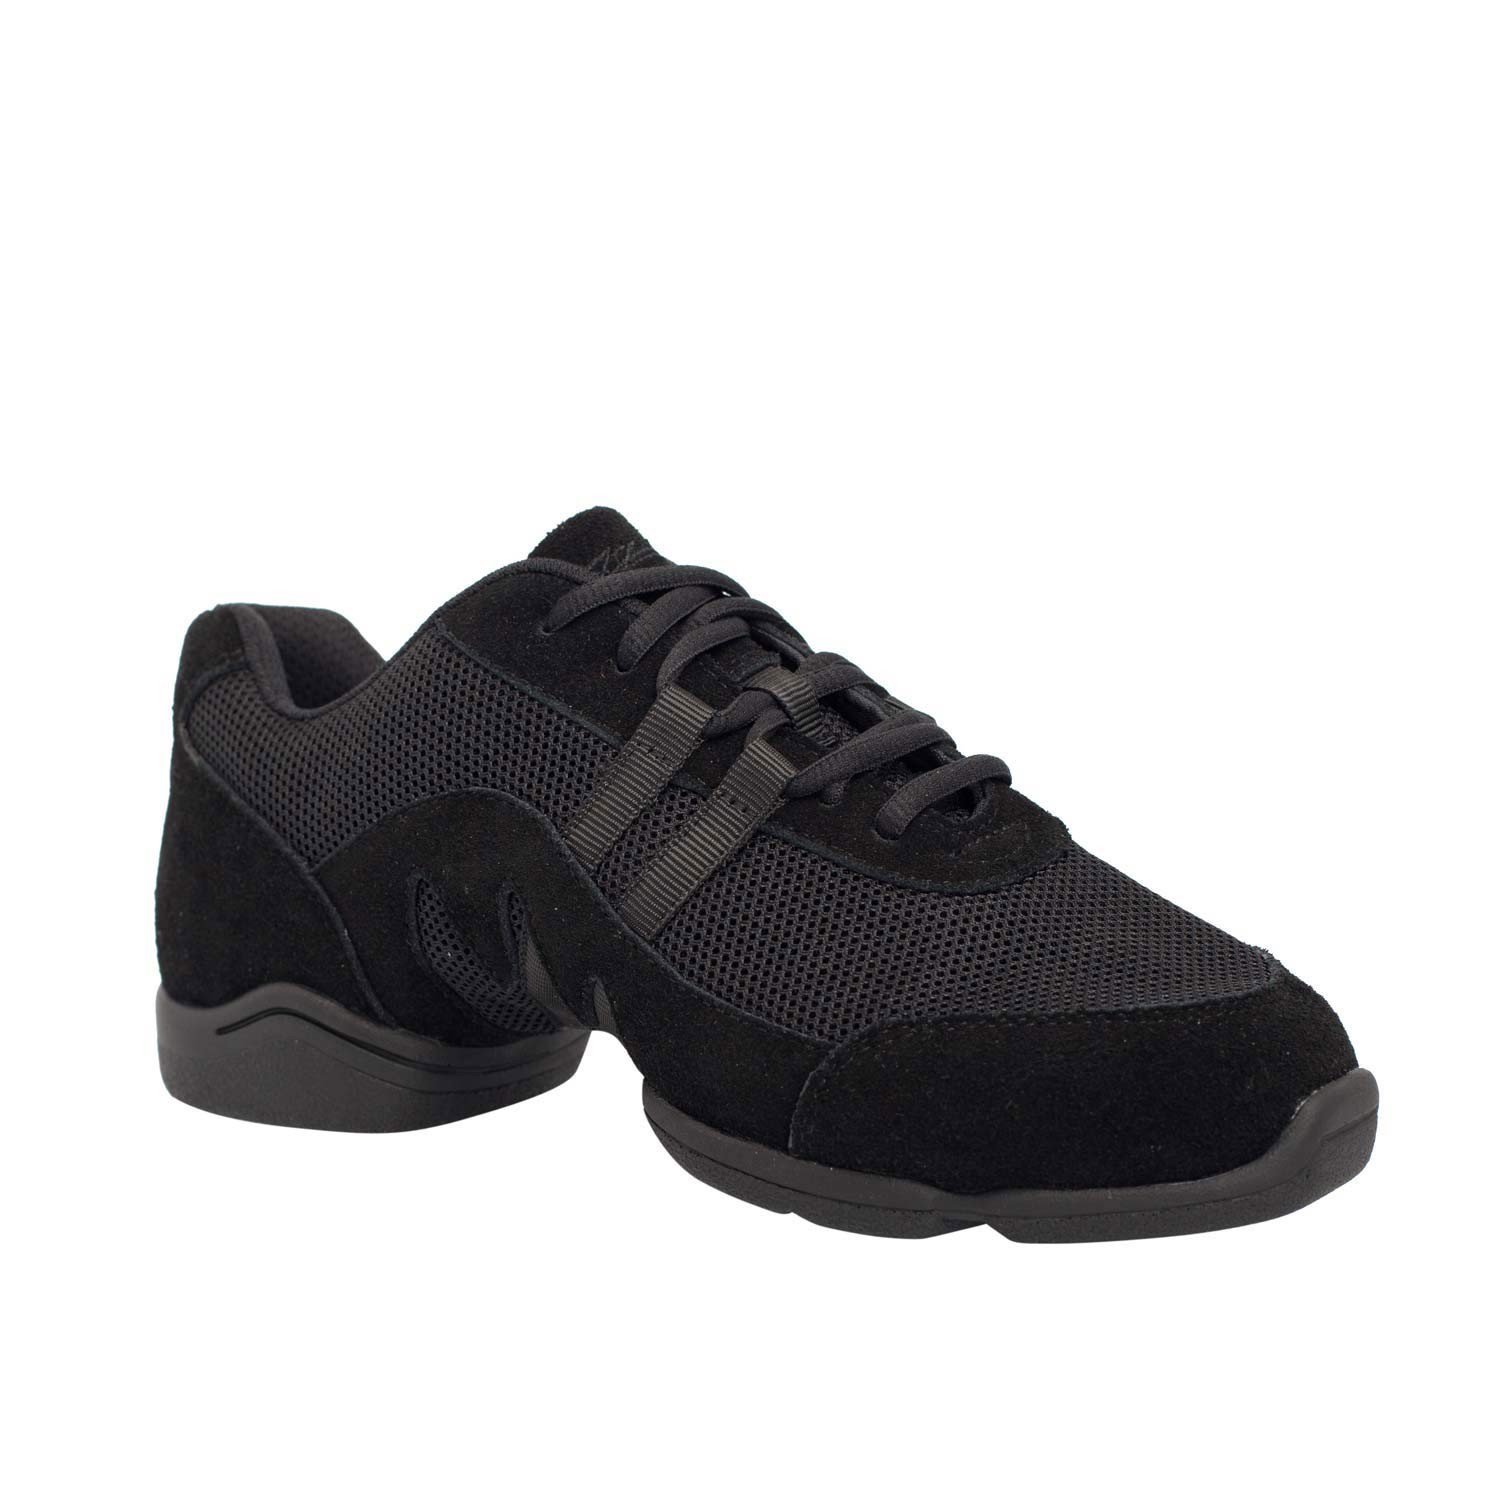 Sansha M33M Mercury Low Top Sneaker